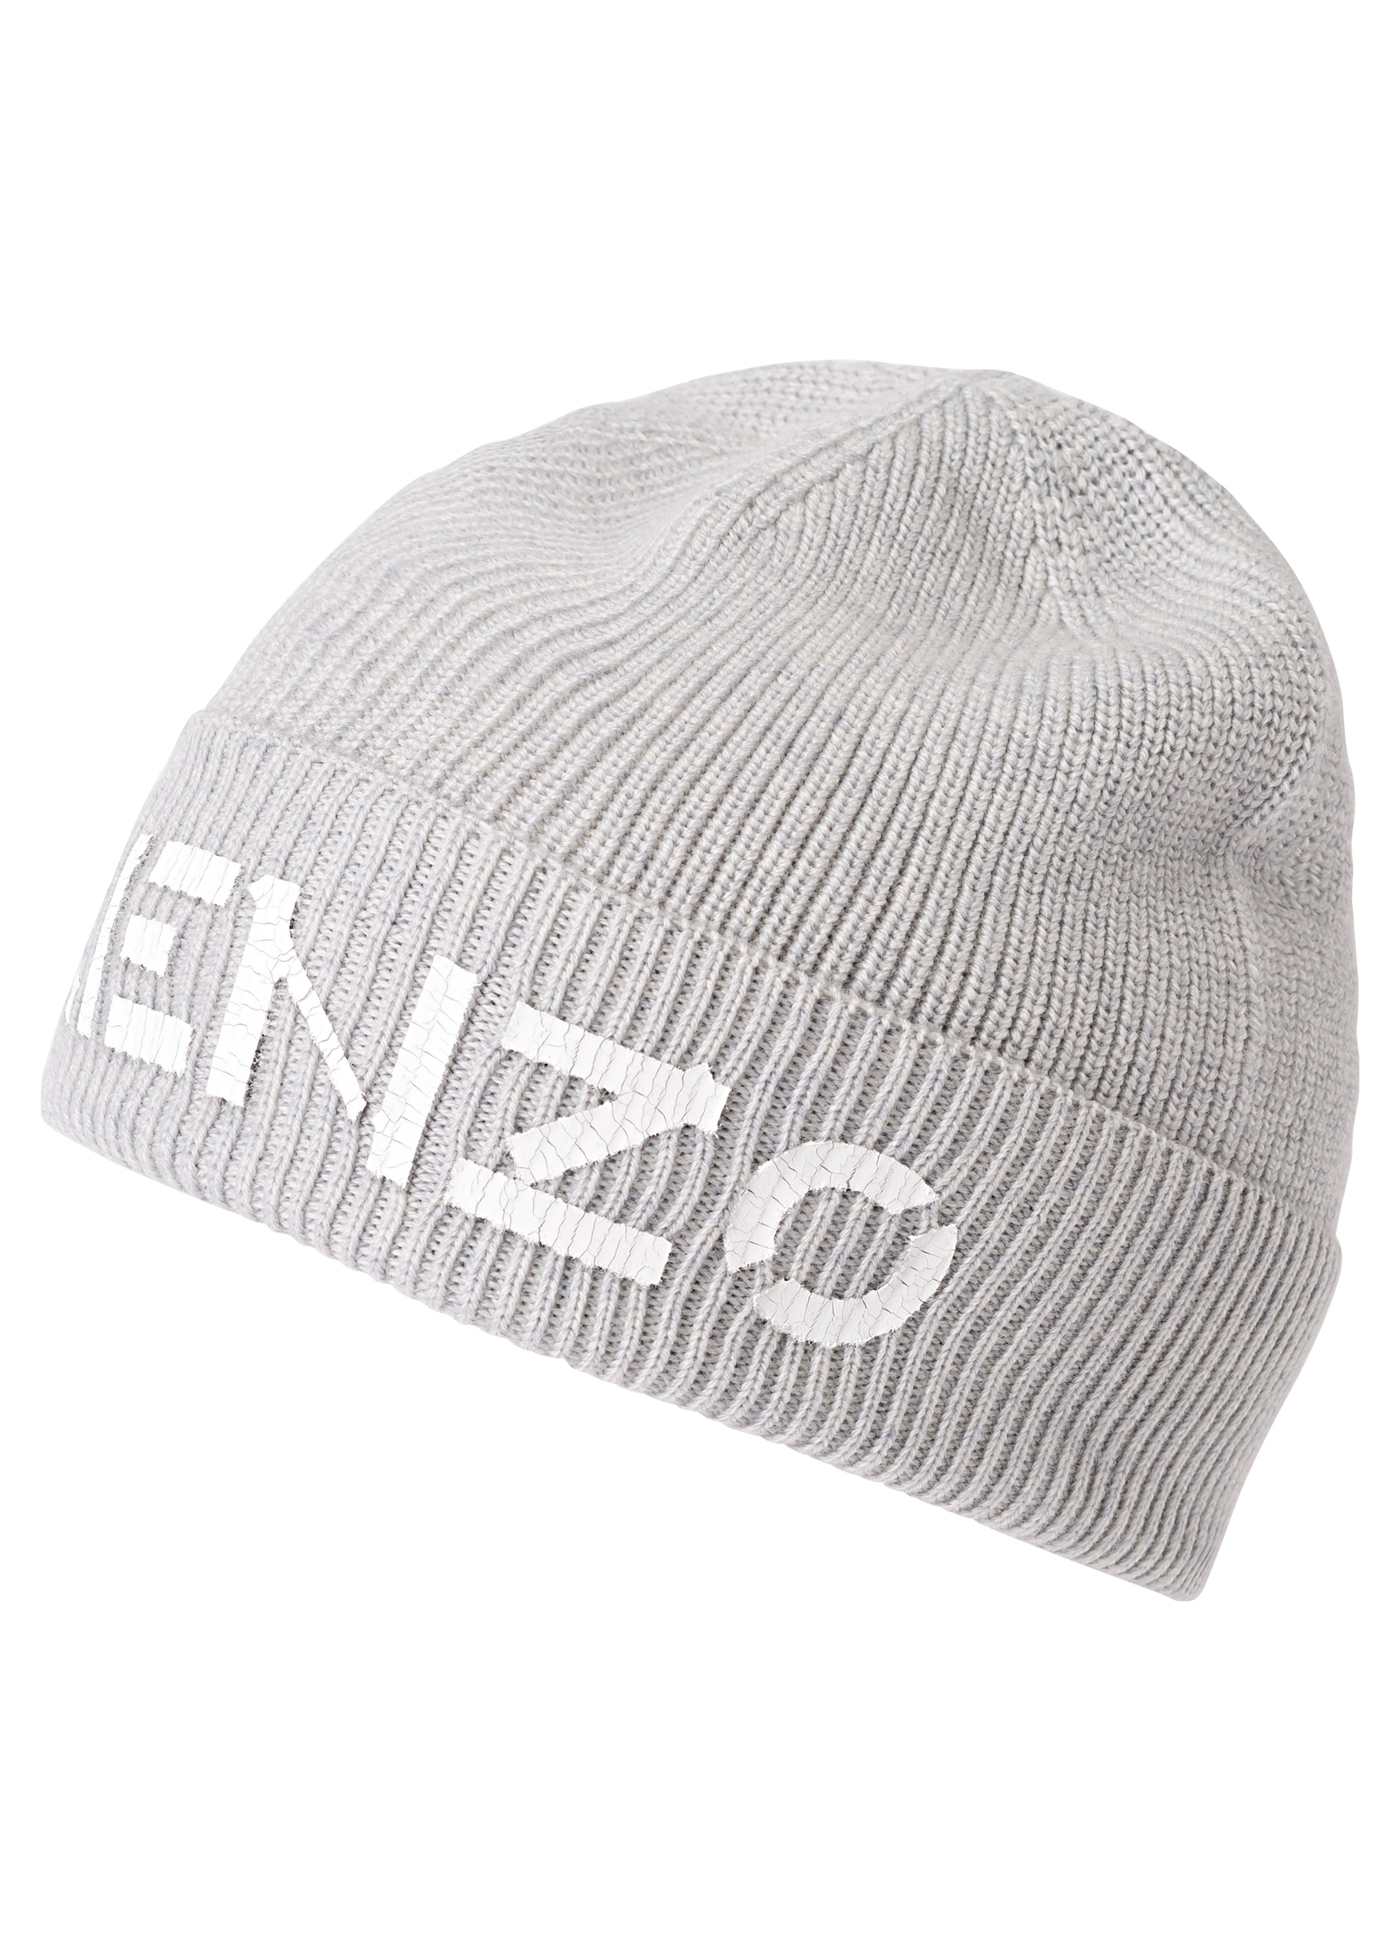 Beanie image number 0